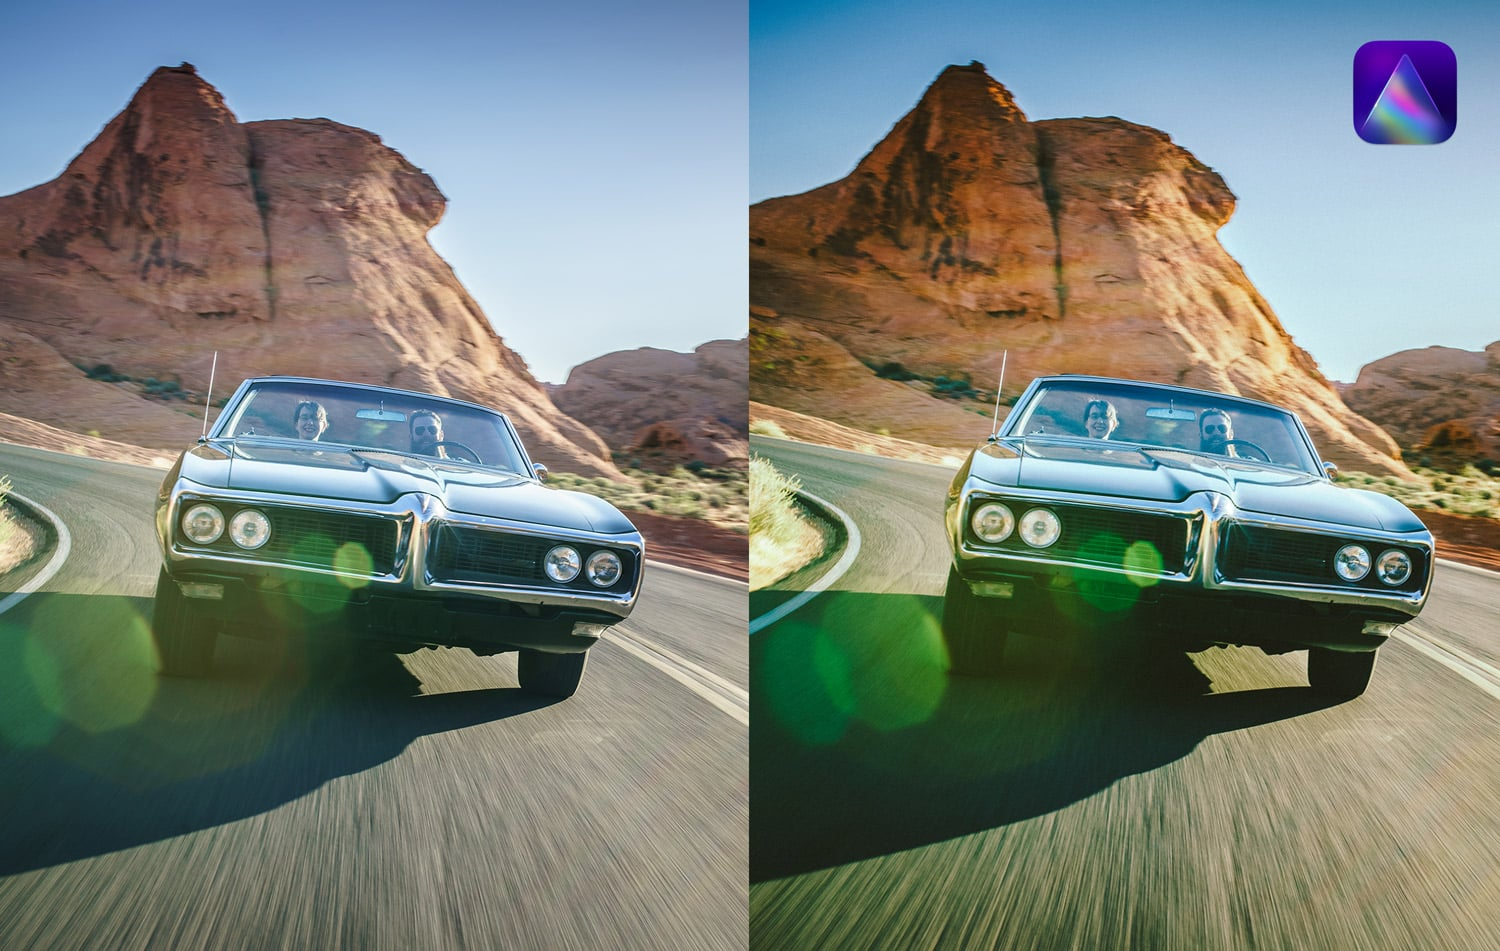 Free-Luminar-Ai-Template-Roadrunner-before-and-After-Stockpresets.com